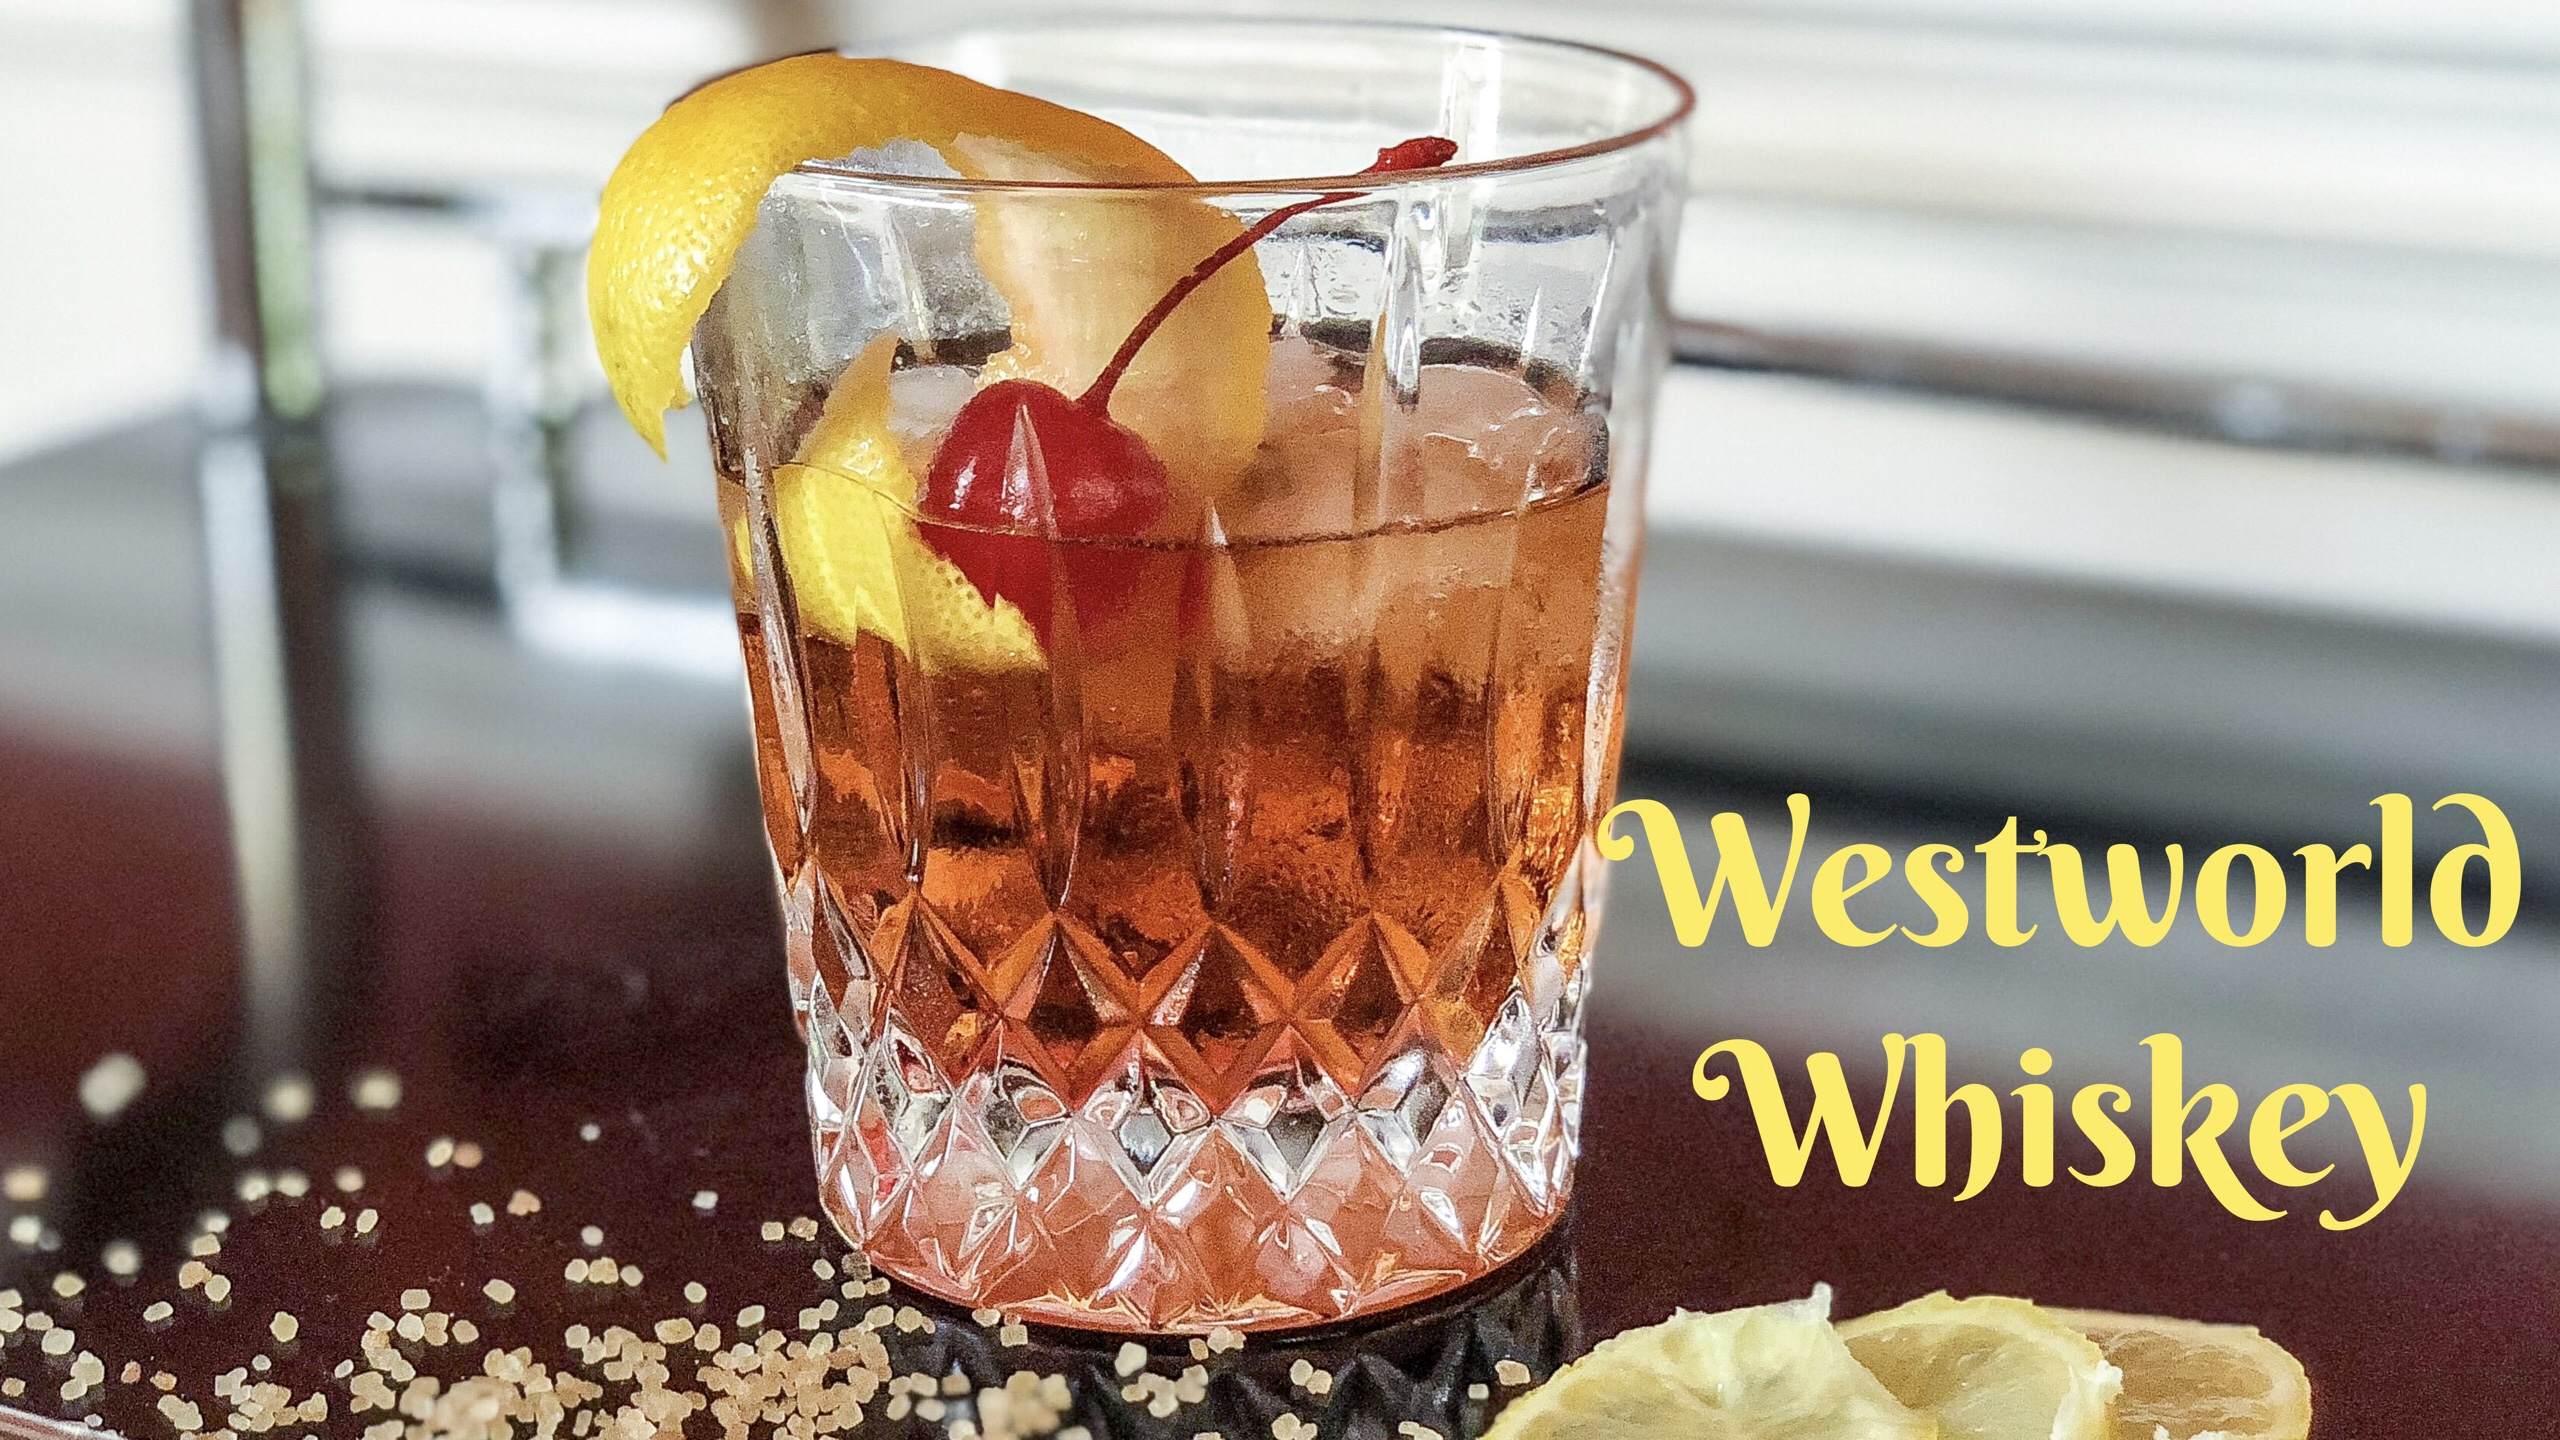 Westworld Themed Whiskey Cocktail